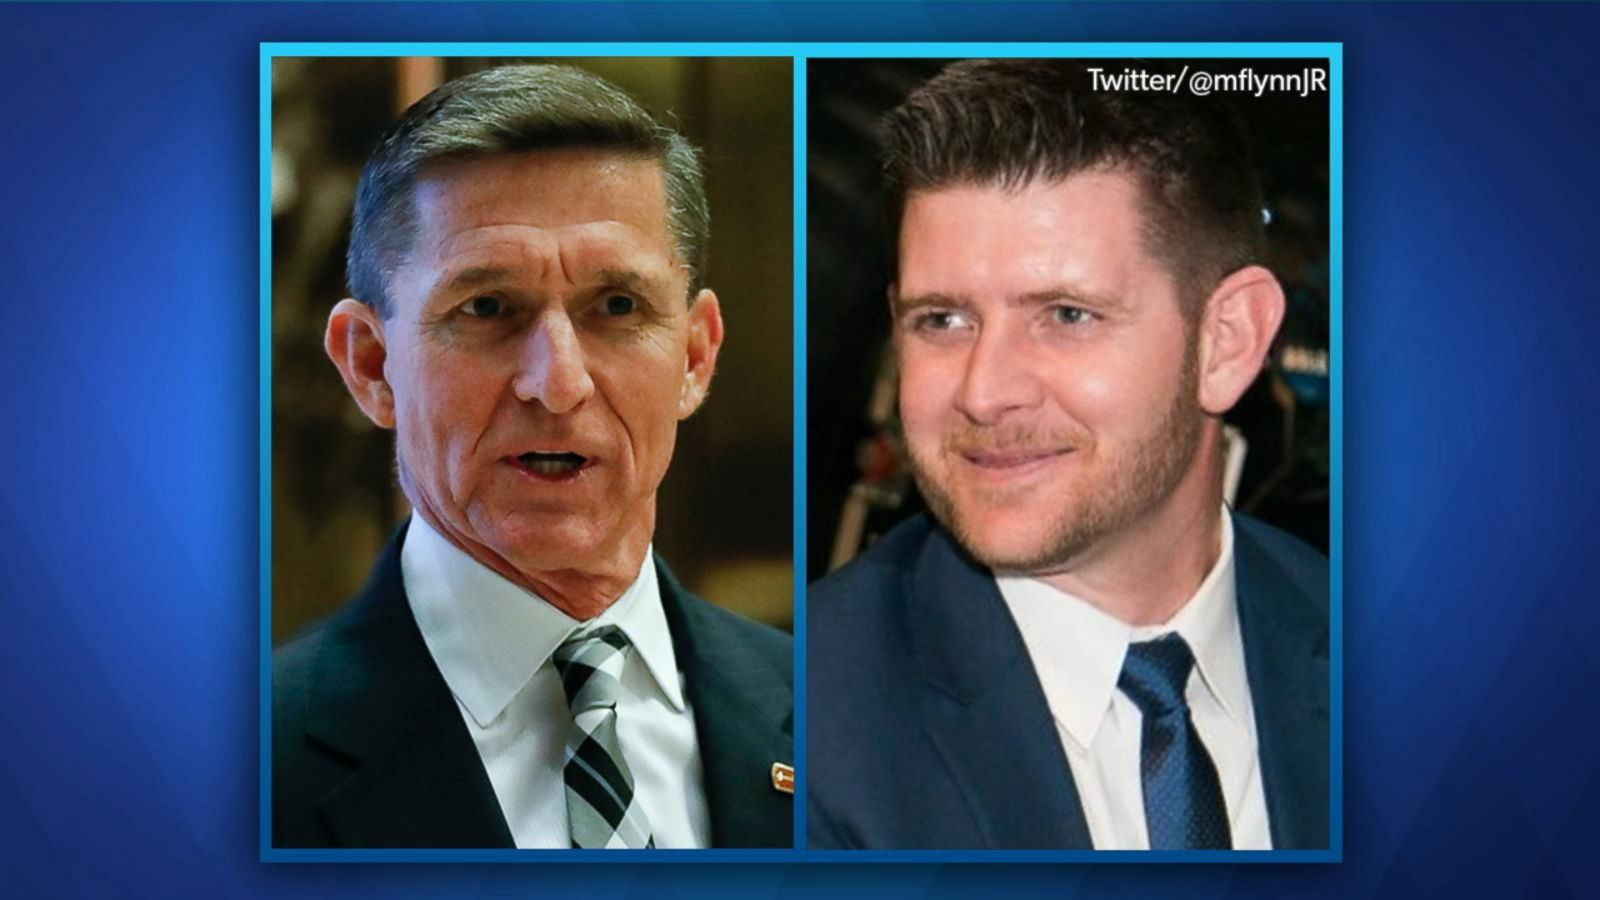 VIDEO: Trump's National Security Adviser Michael Flynn's Son Tweets Conspiracy Theories